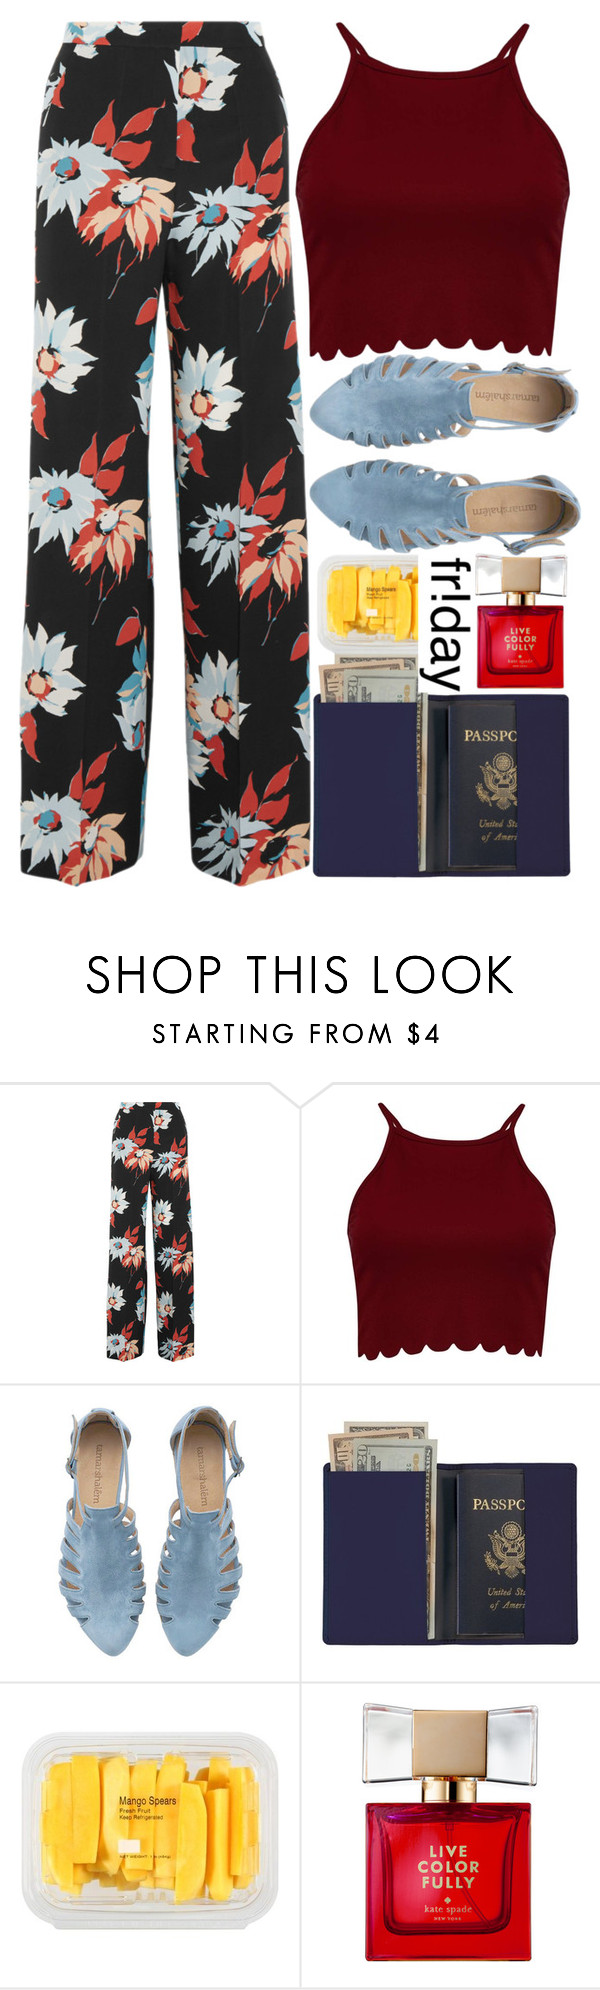 """Slay Every Day"" by lseed87 ❤ liked on Polyvore featuring Etro, Royce Leather, MANGO, Kate Spade, floral and Flowers"